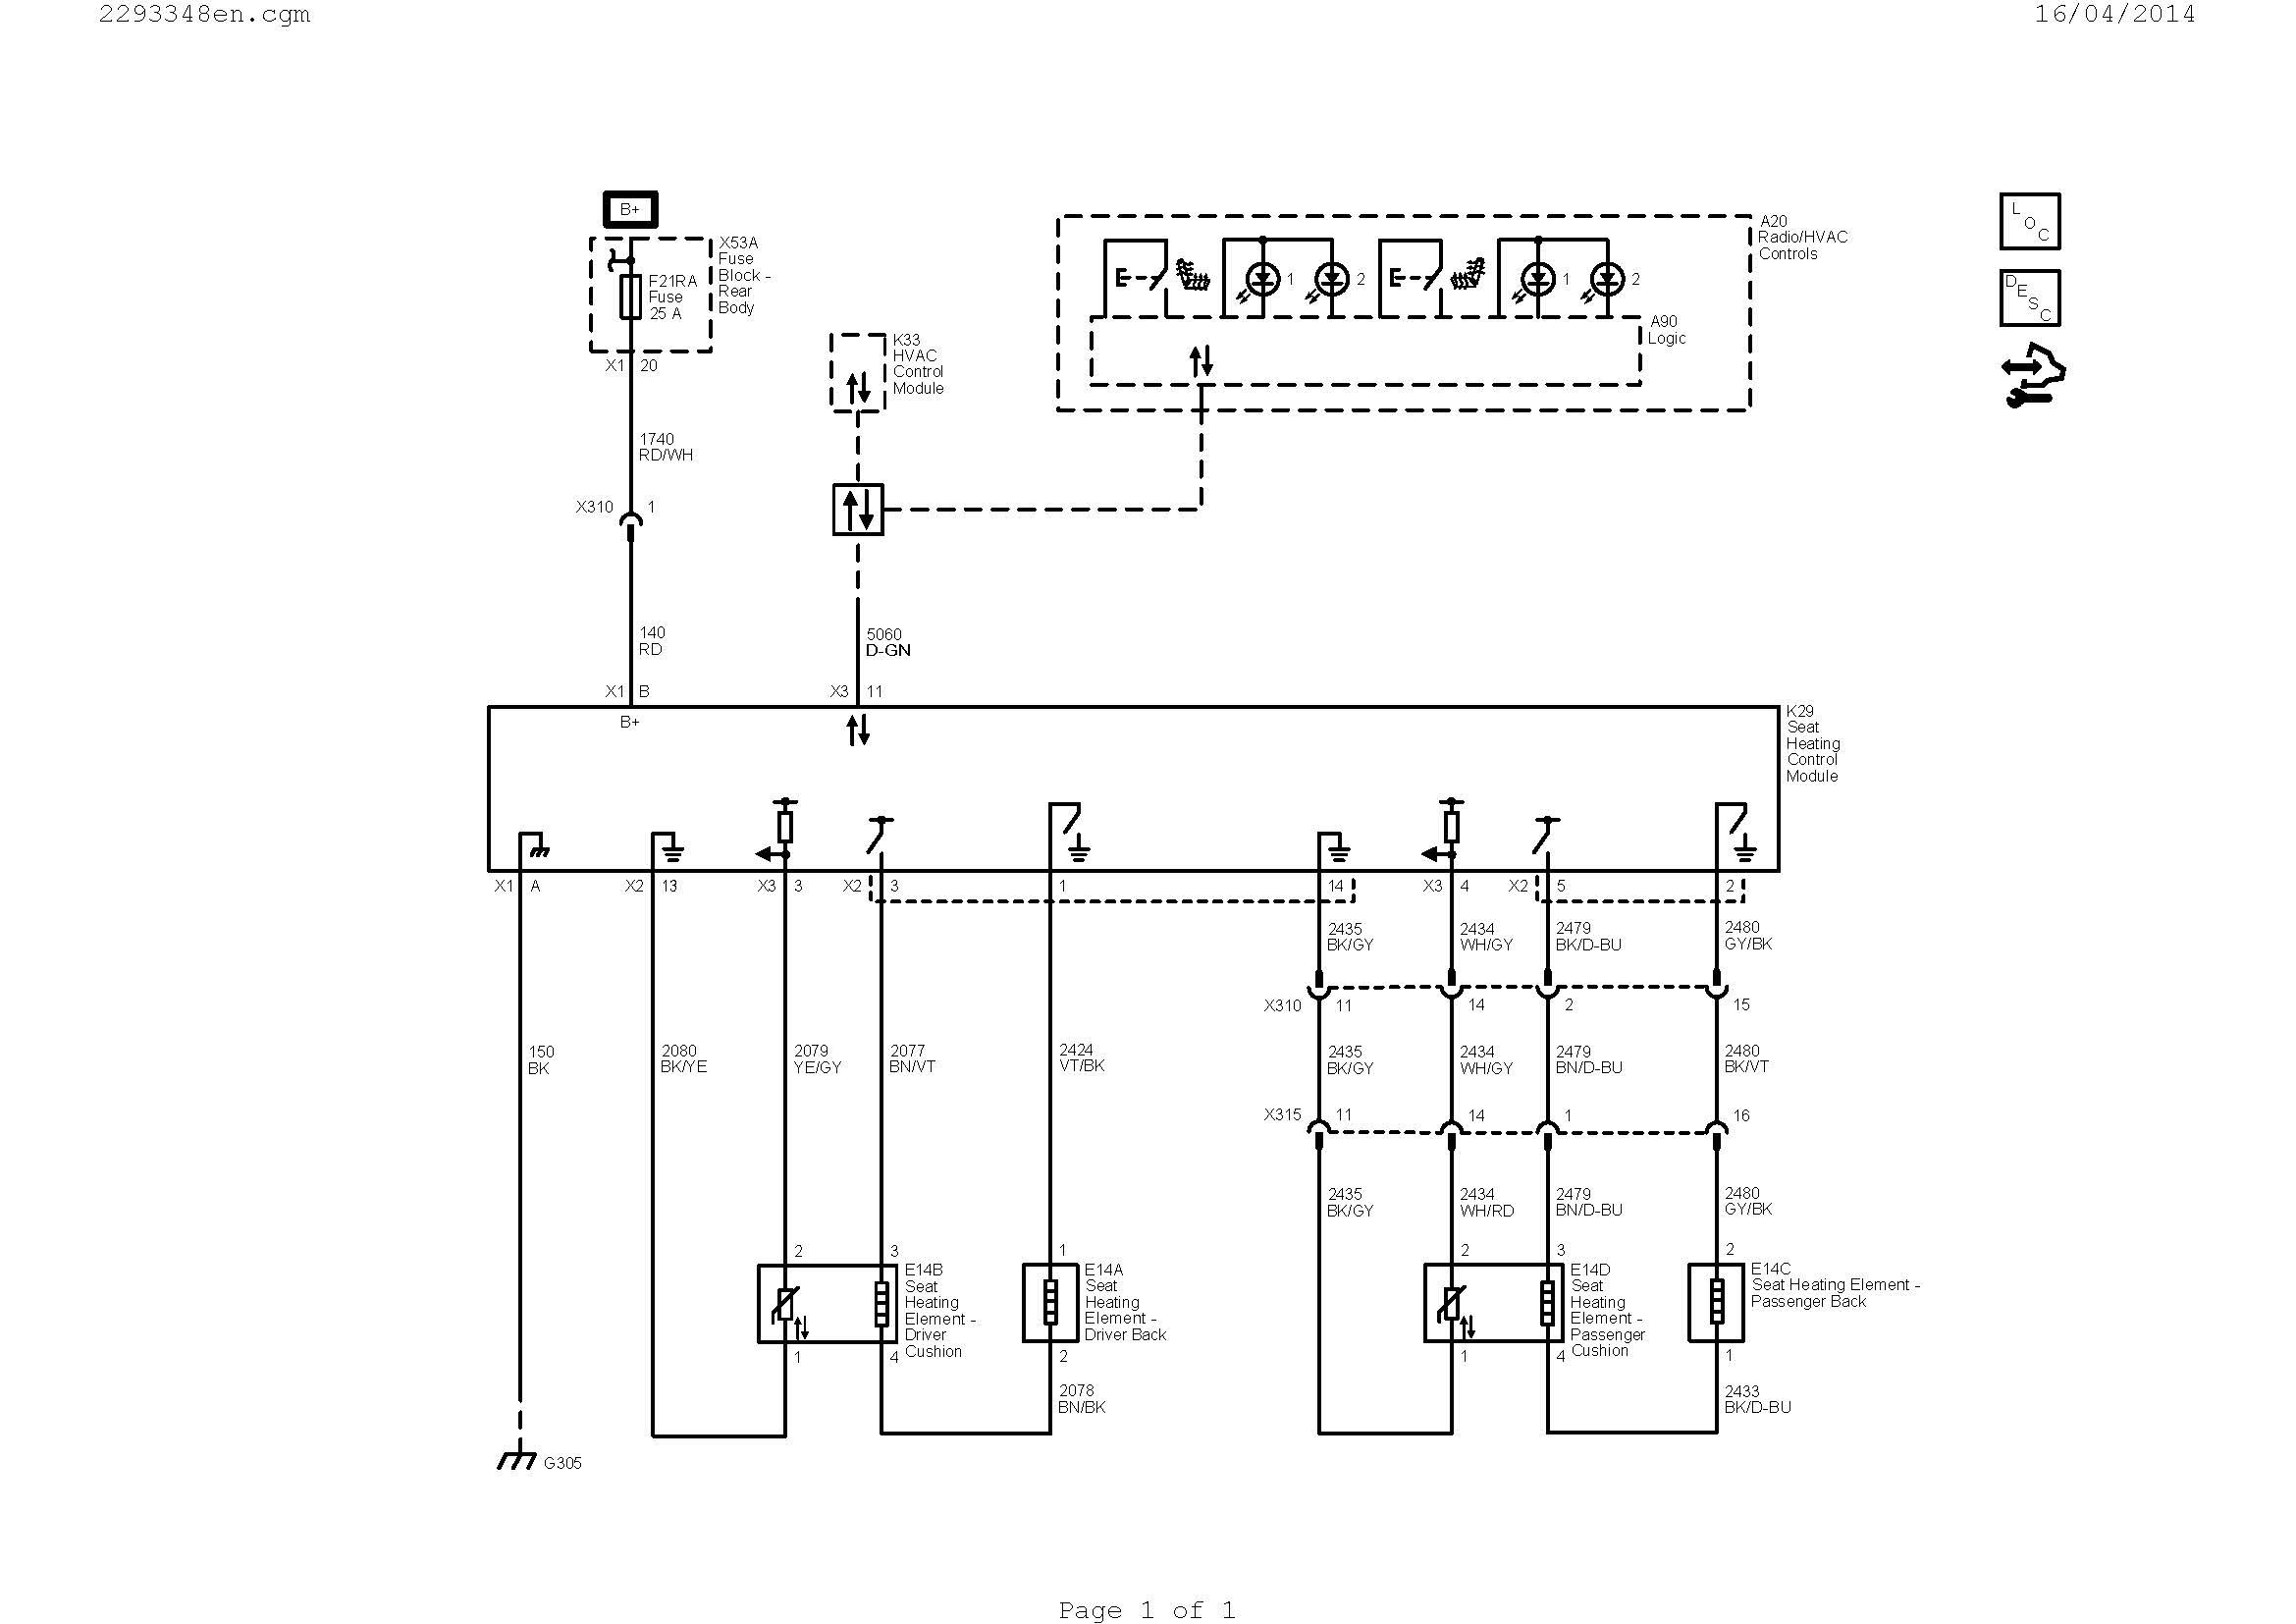 3 phase surge protector wiring diagram Download-understanding hvac wiring diagrams Download Diagram Websites Unique Hvac Diagram 0d – Wire Diagram 14 12-h